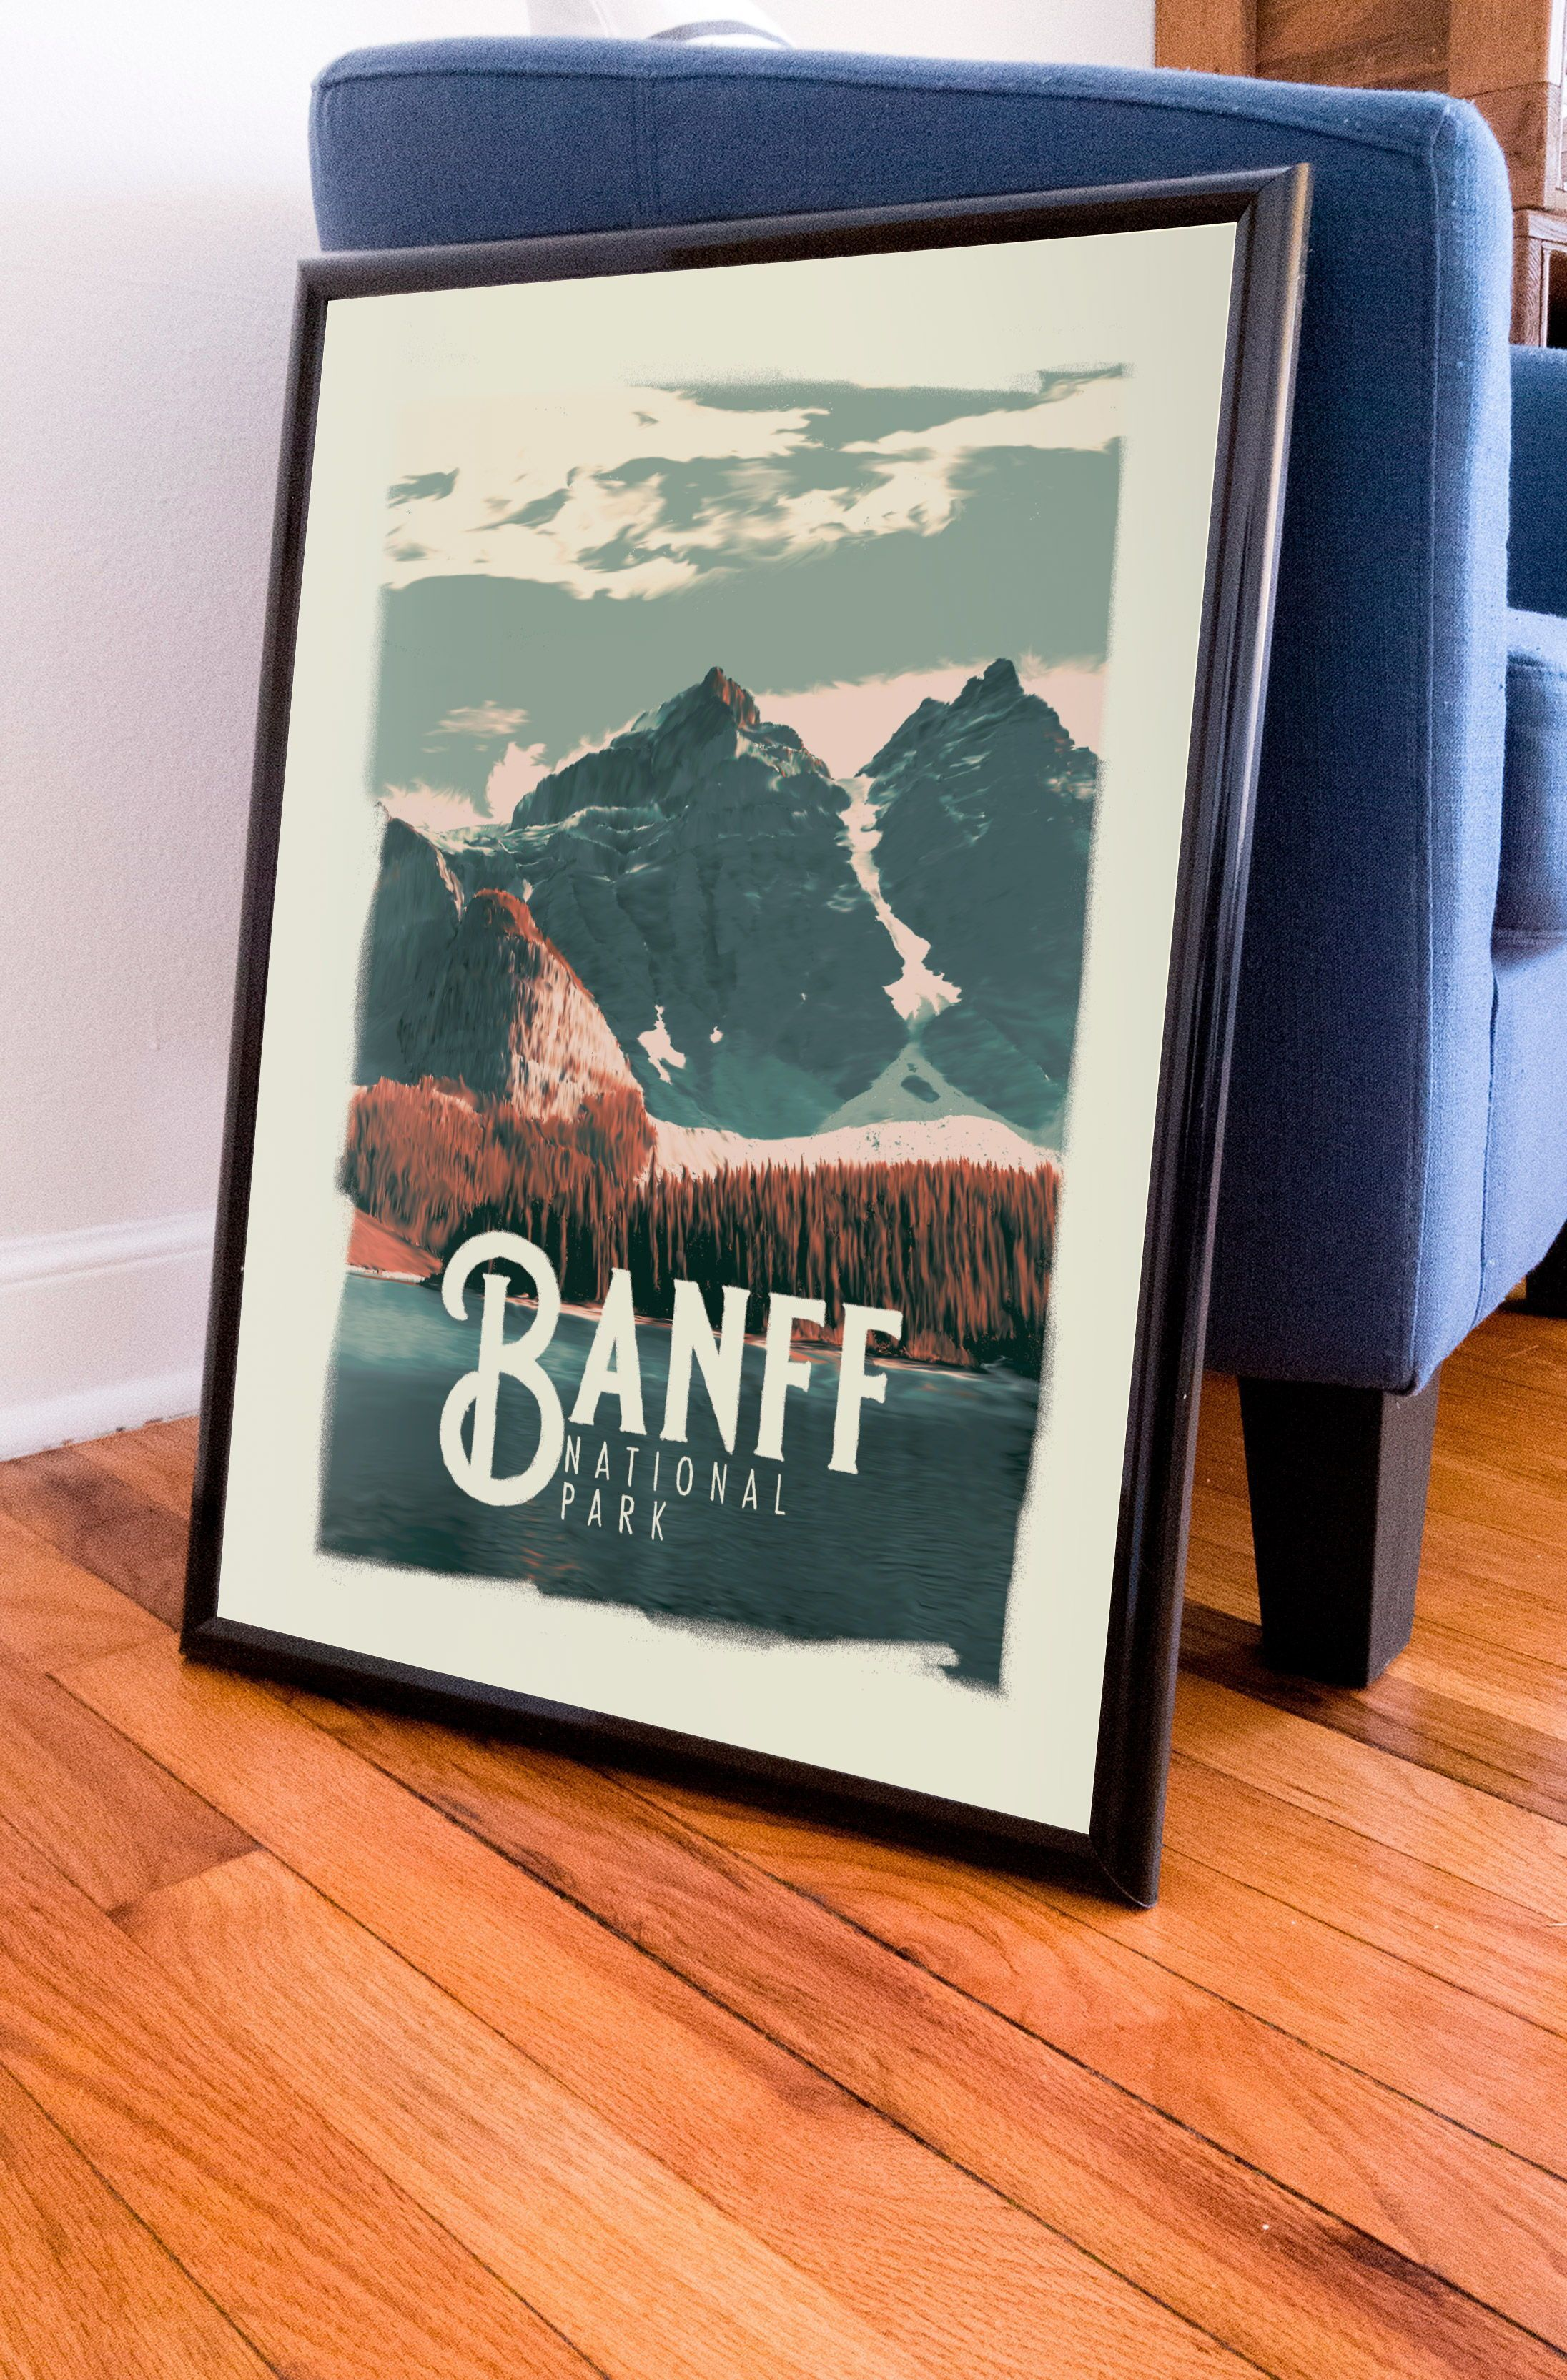 Banff National Park Poster Etsy In 2020 National Park Posters Banff National Park National Parks